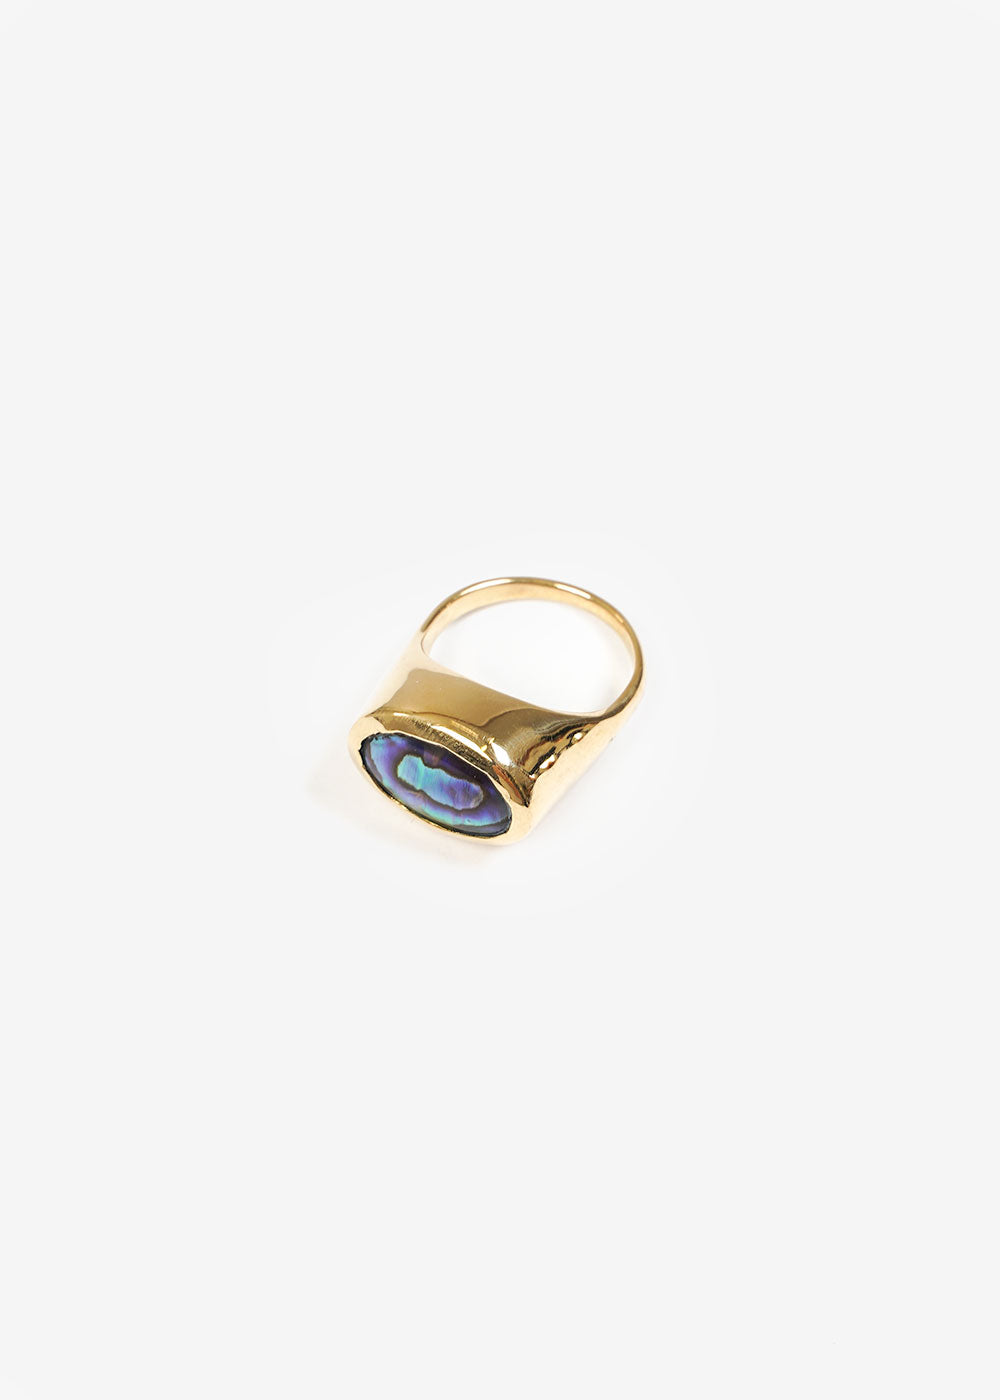 LUINY Abalone Pinky Ring No. 2 — Shop sustainable fashion and slow fashion at New Classics Studios